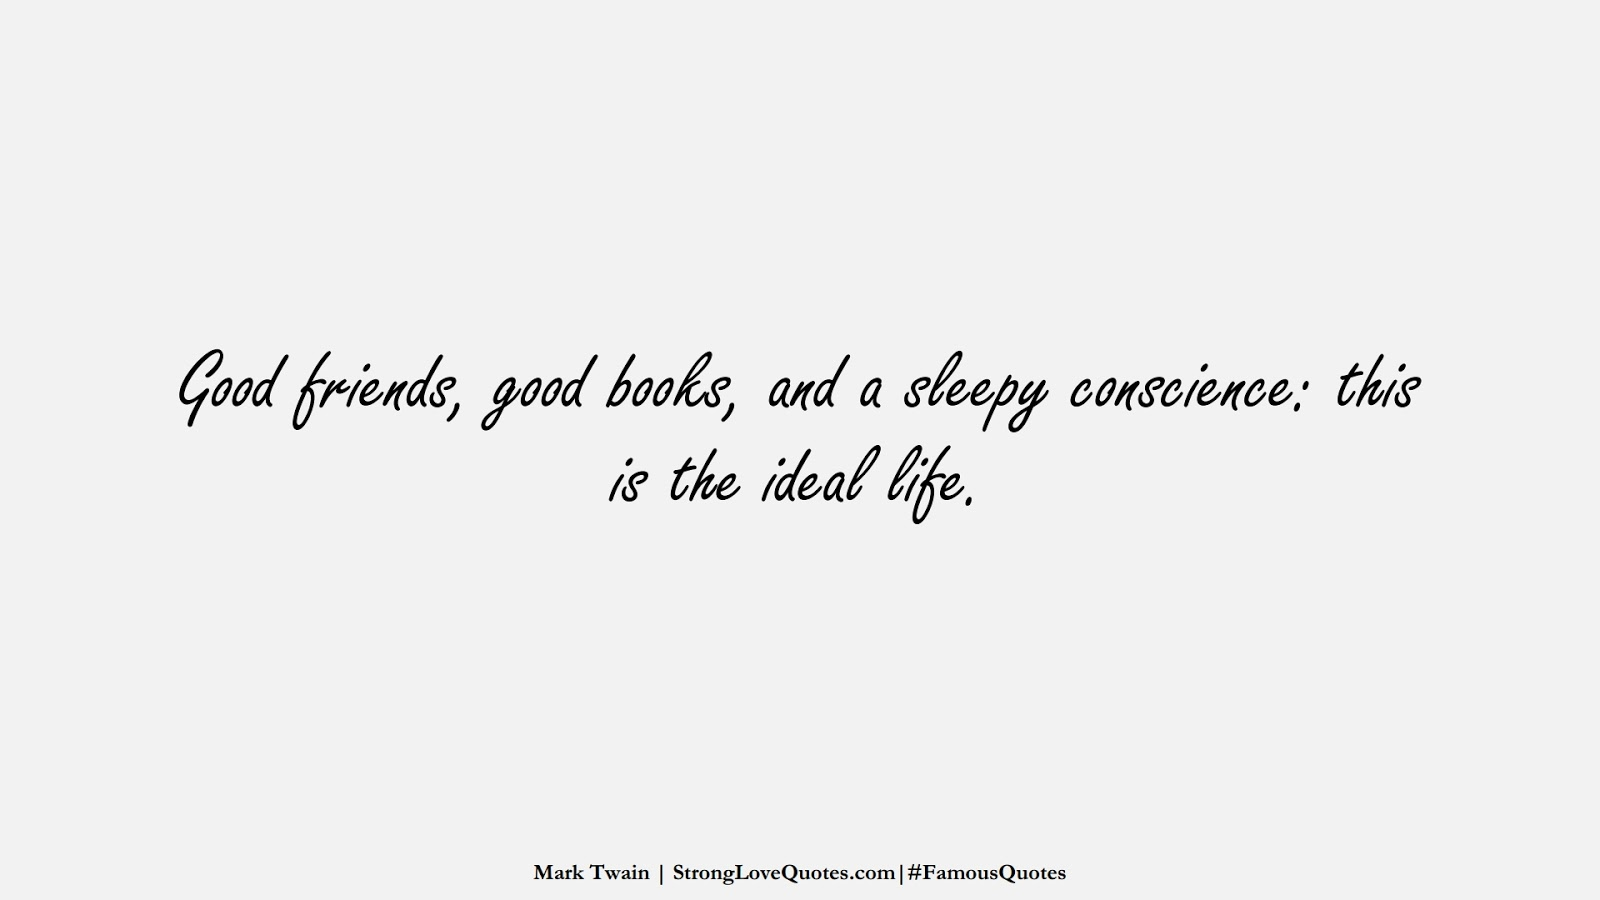 Good friends, good books, and a sleepy conscience: this is the ideal life. (Mark Twain);  #FamousQuotes